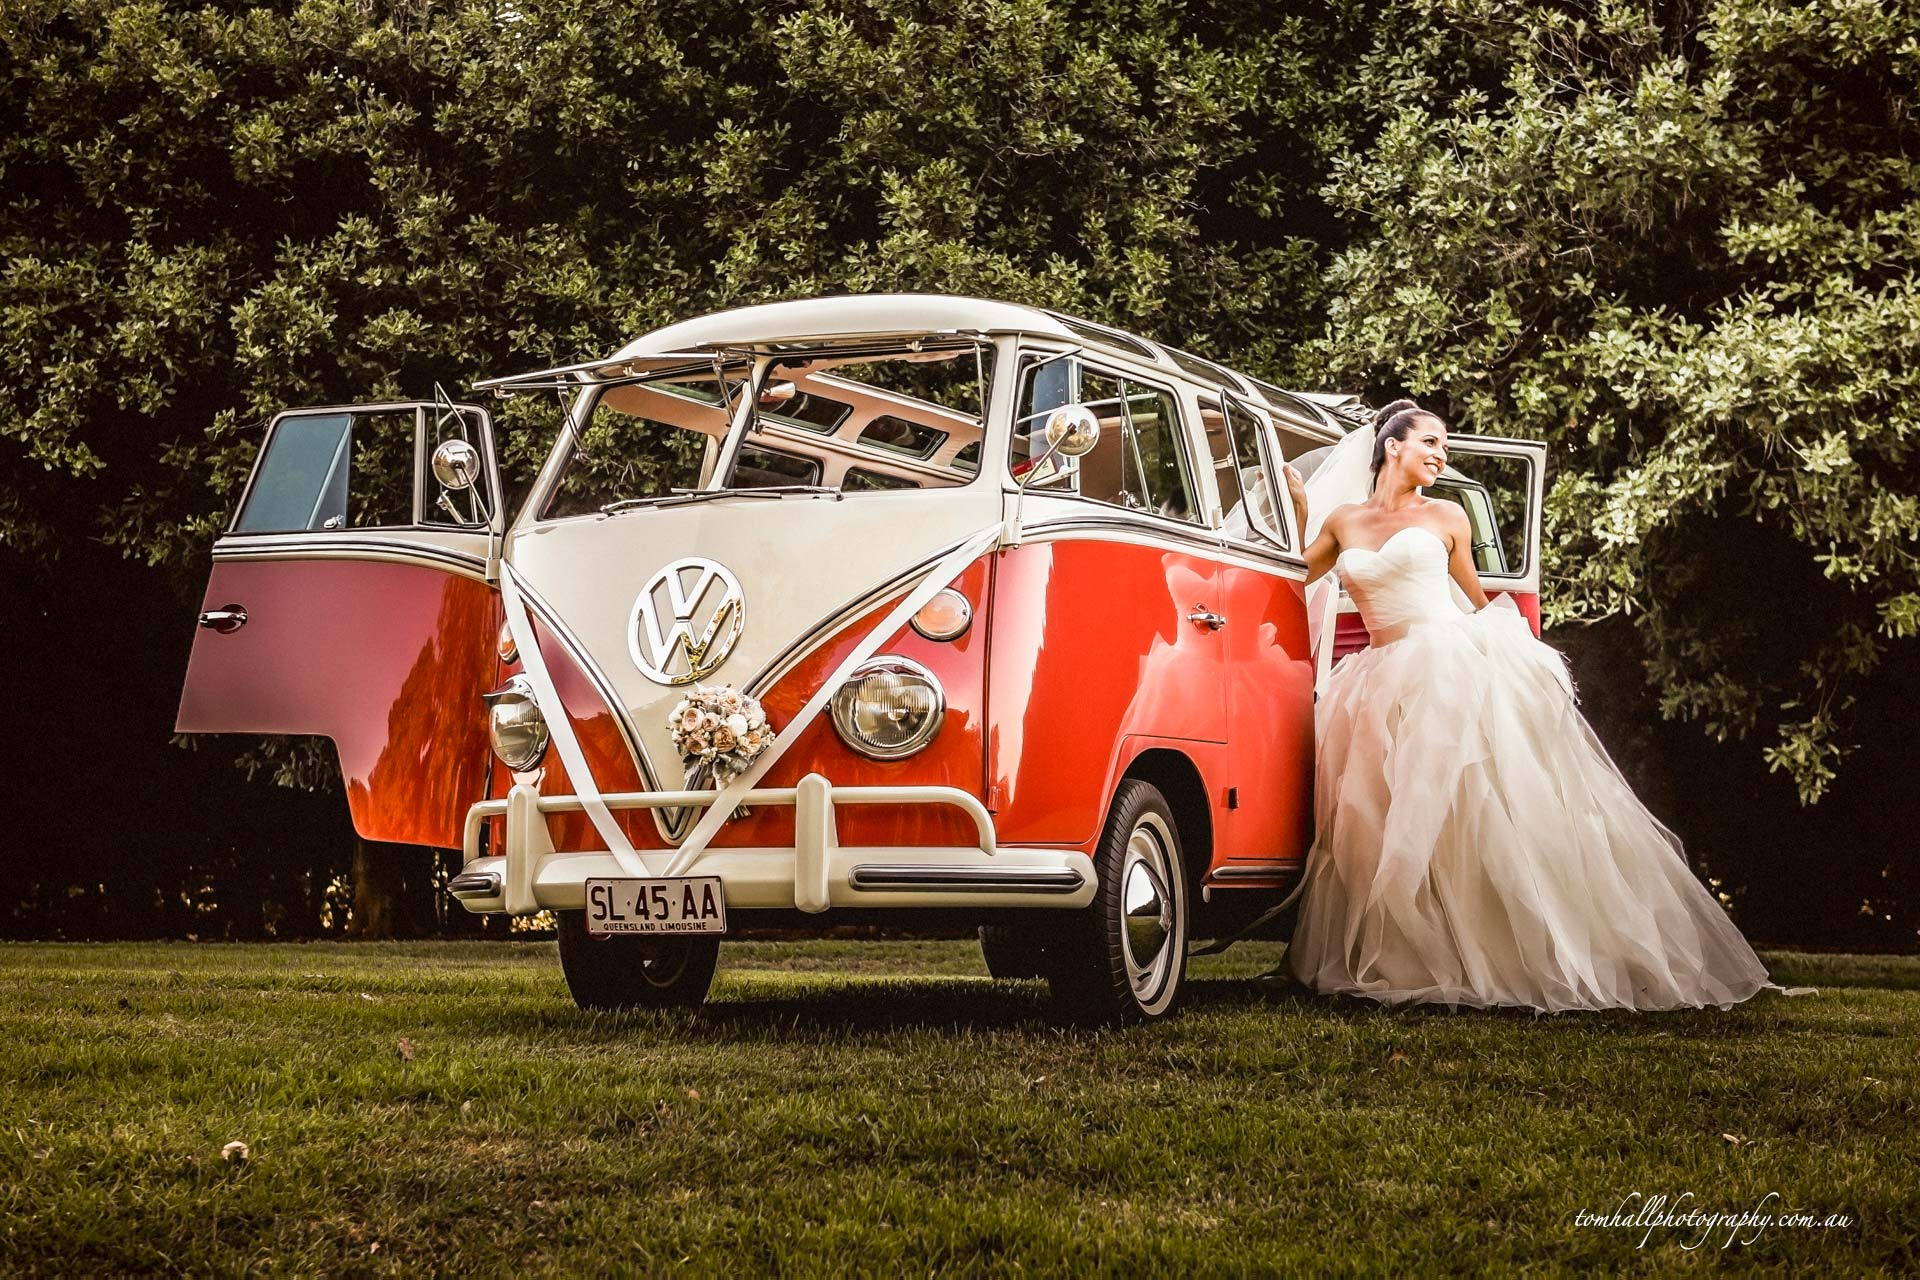 Deluxe Kombi Service's Maleny wedding car